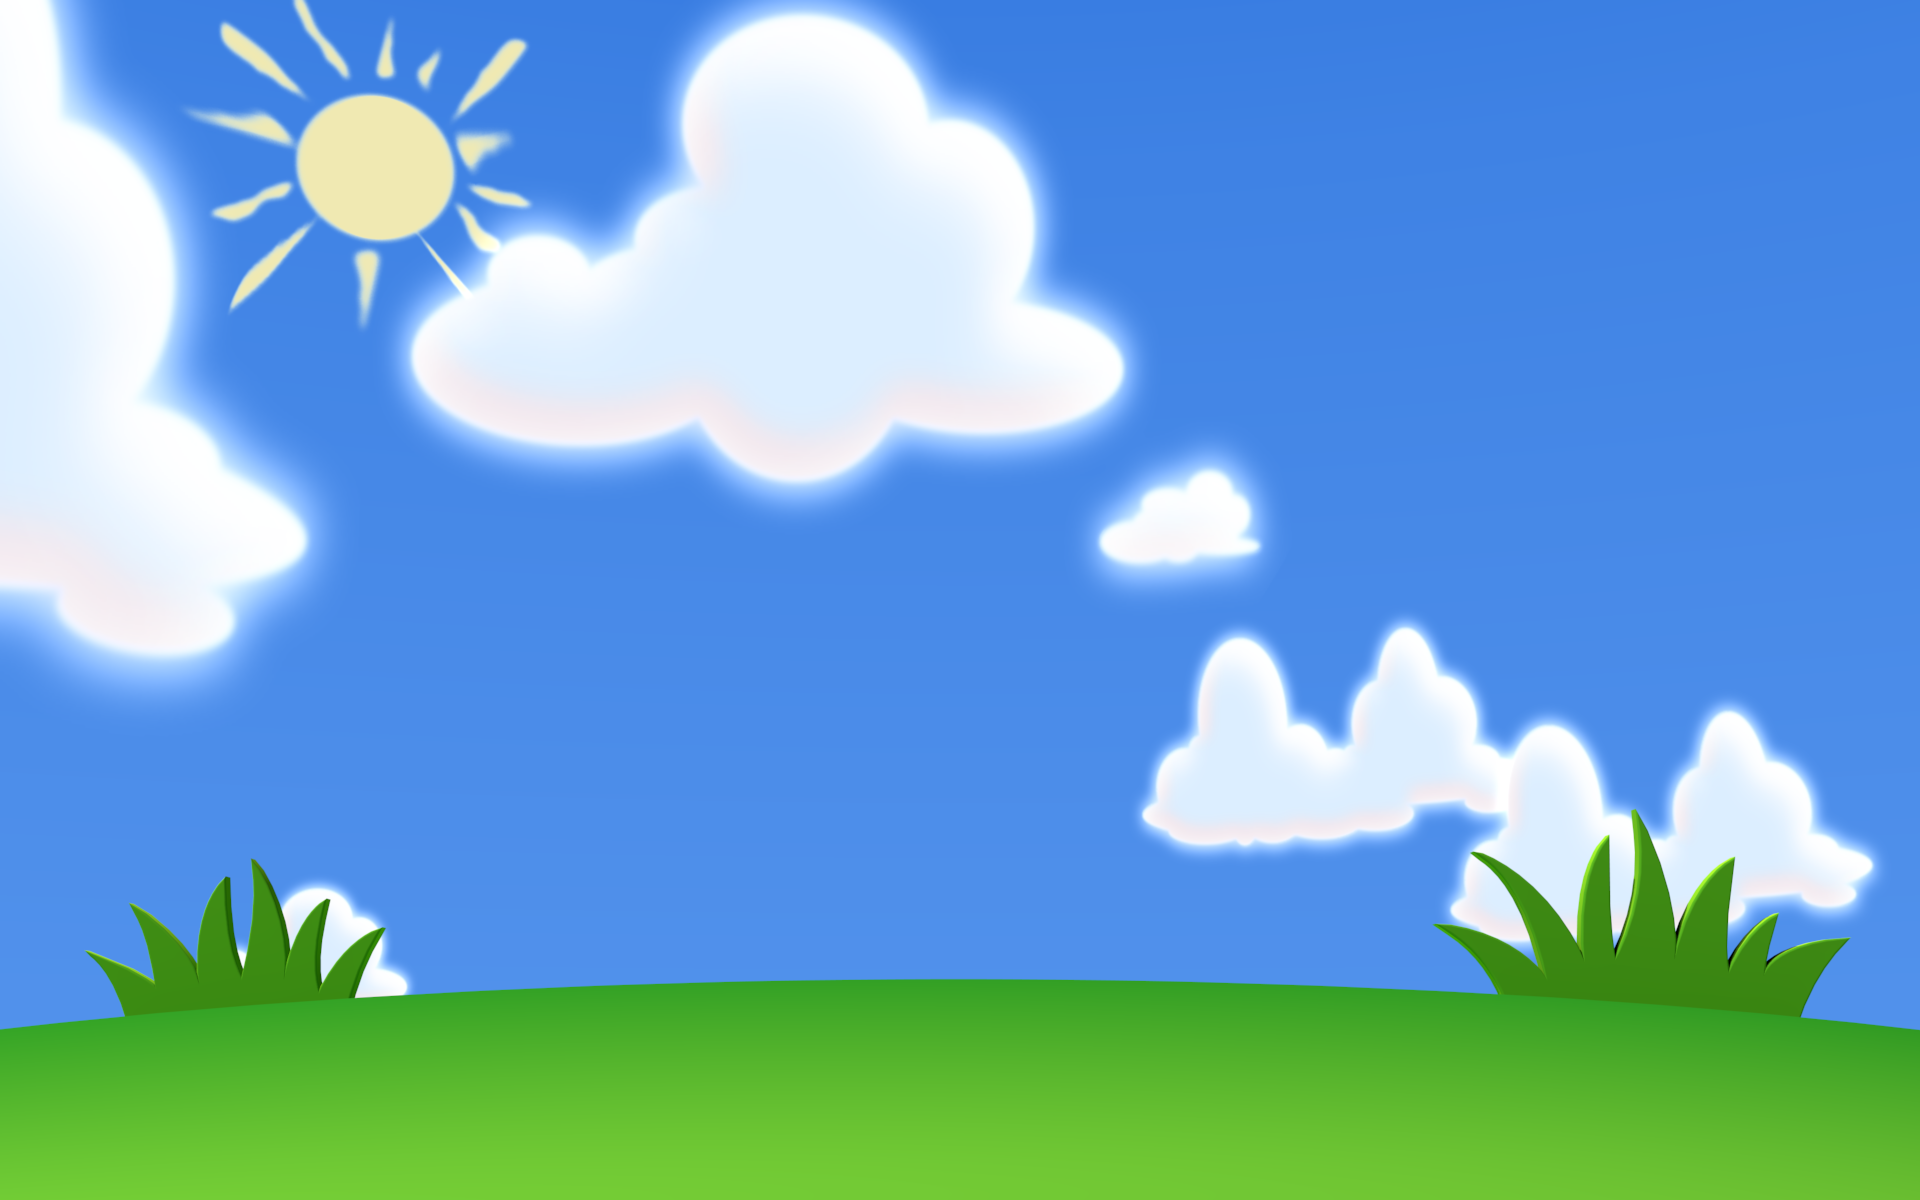 Background Clipart-background clipart-2